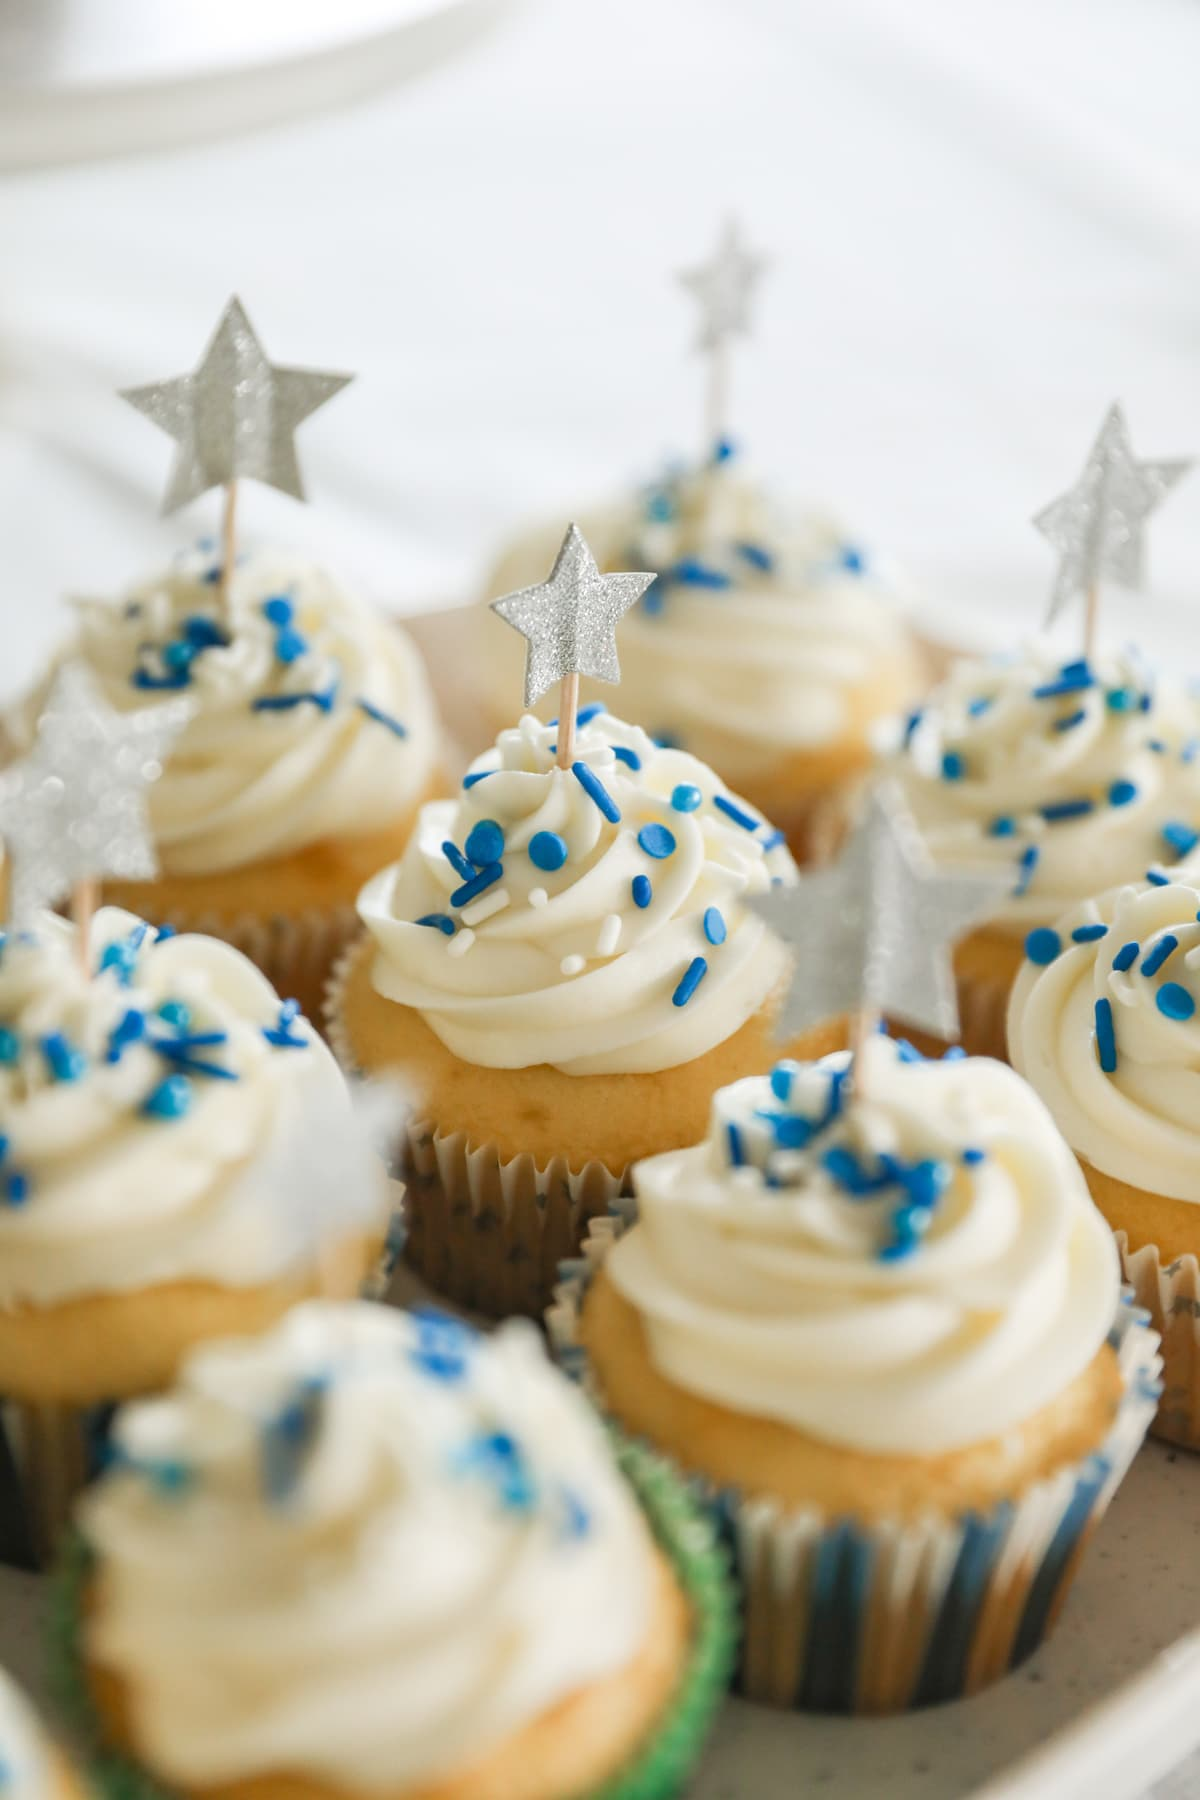 vanilla cupcakes with star decorations